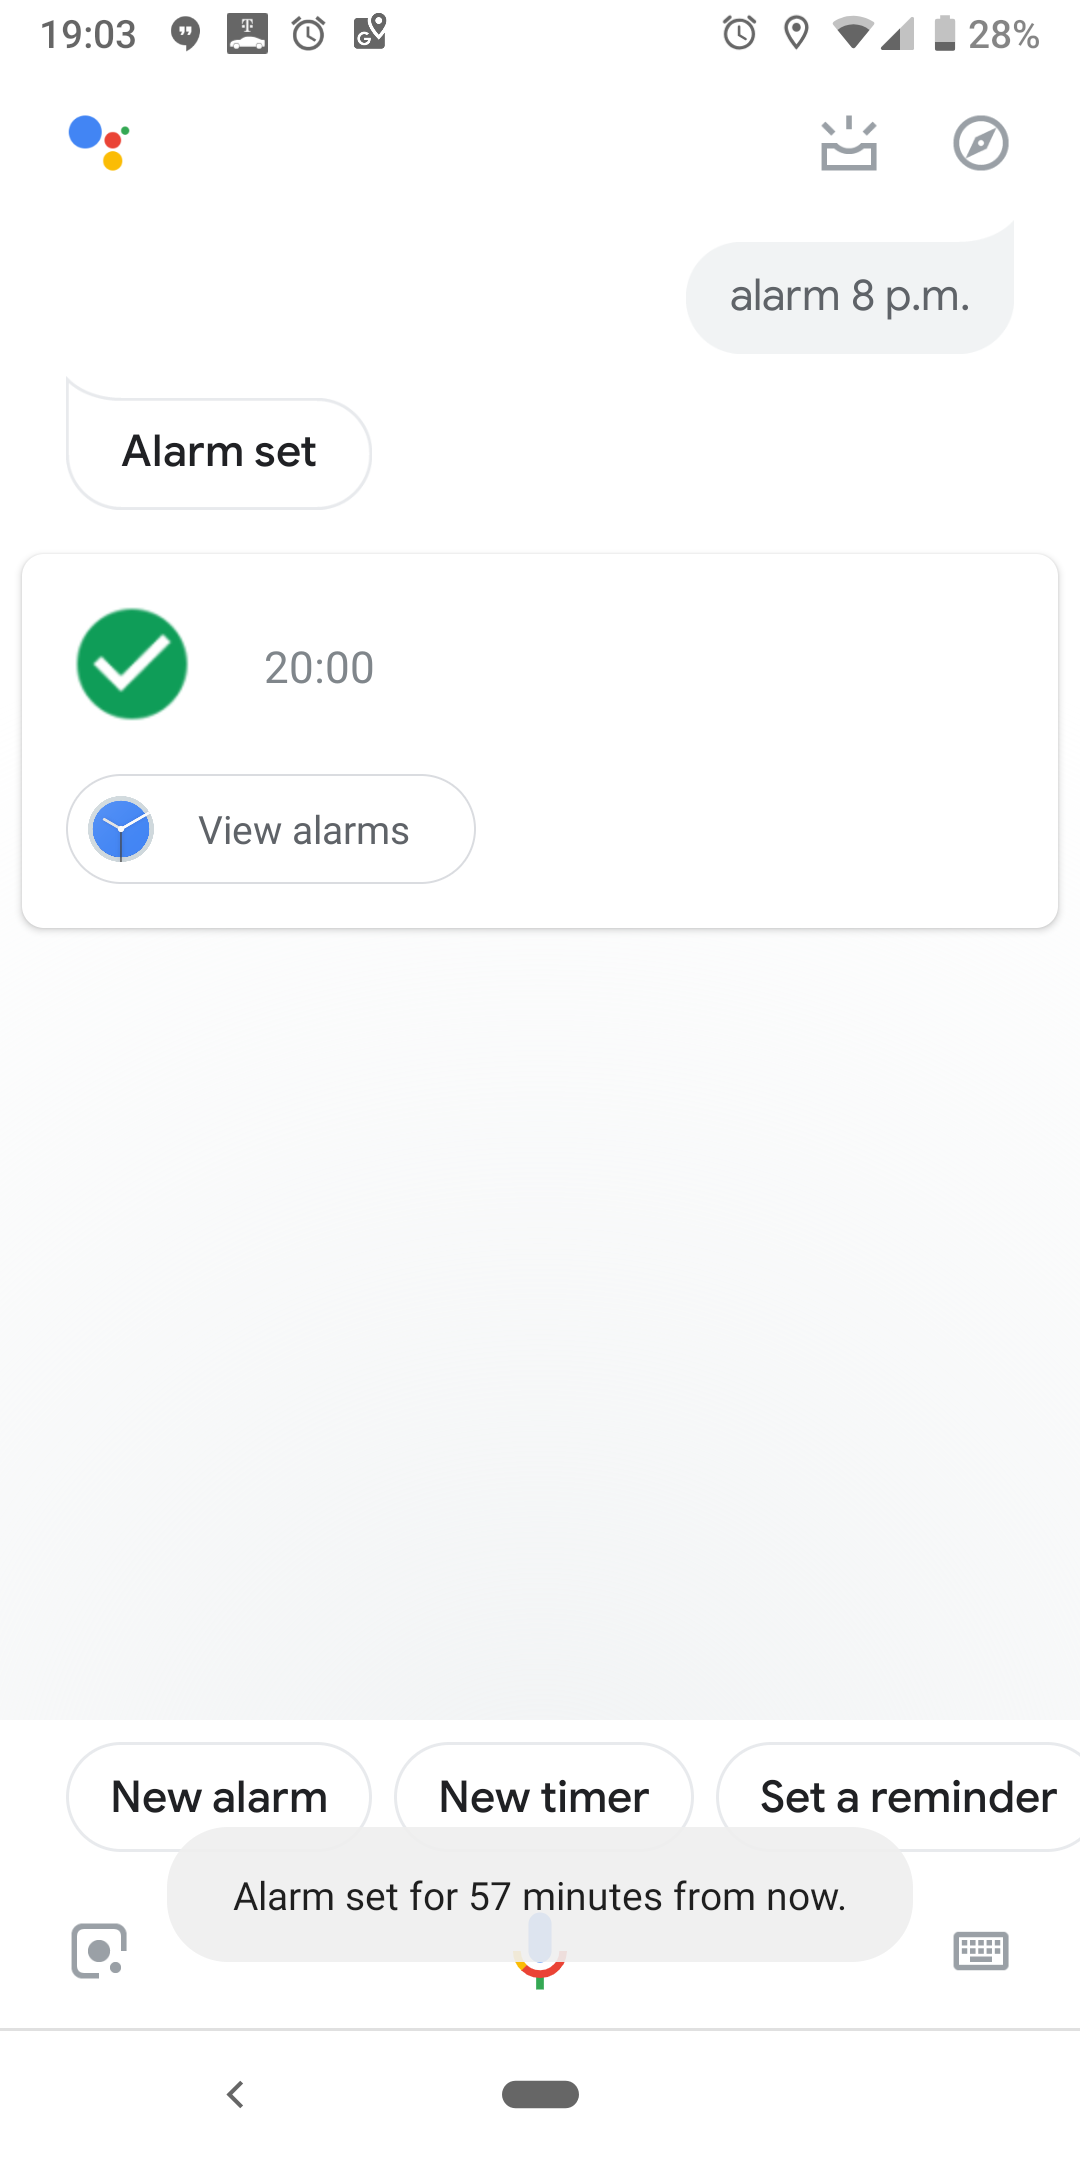 Assistant is not working properly on lock screen  It reacts